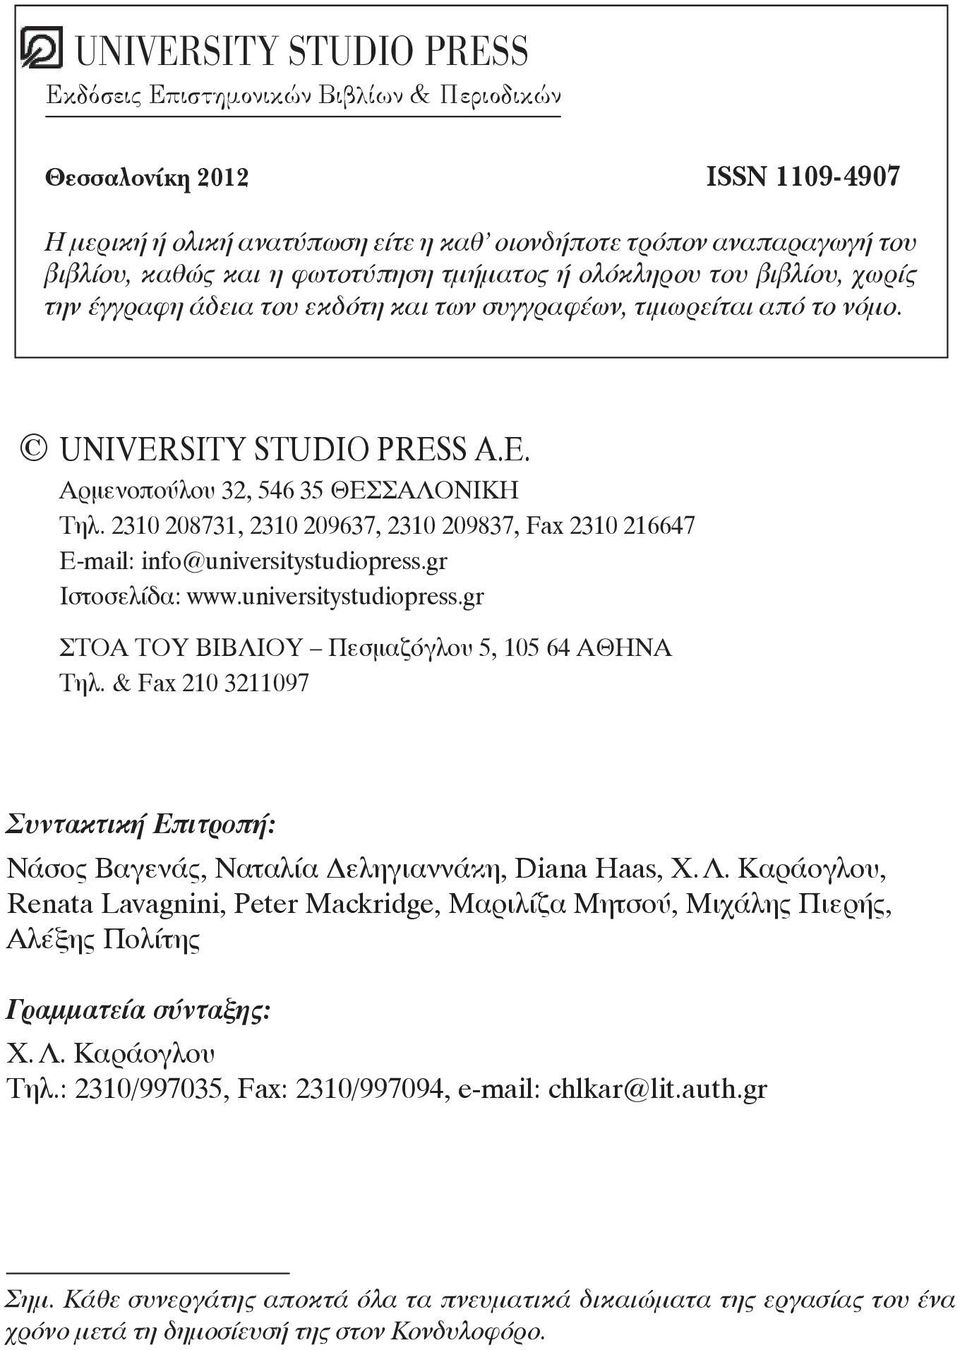 2310 208731, 2310 209637, 2310 209837, Fax 2310 216647 E-mail: info@universitystudiopress.gr Ιστοσελίδα: www.universitystudiopress.gr ΣTOA TOY BIBΛIOY Πεσμαζόγλου 5, 105 64 AΘHNA Tηλ.